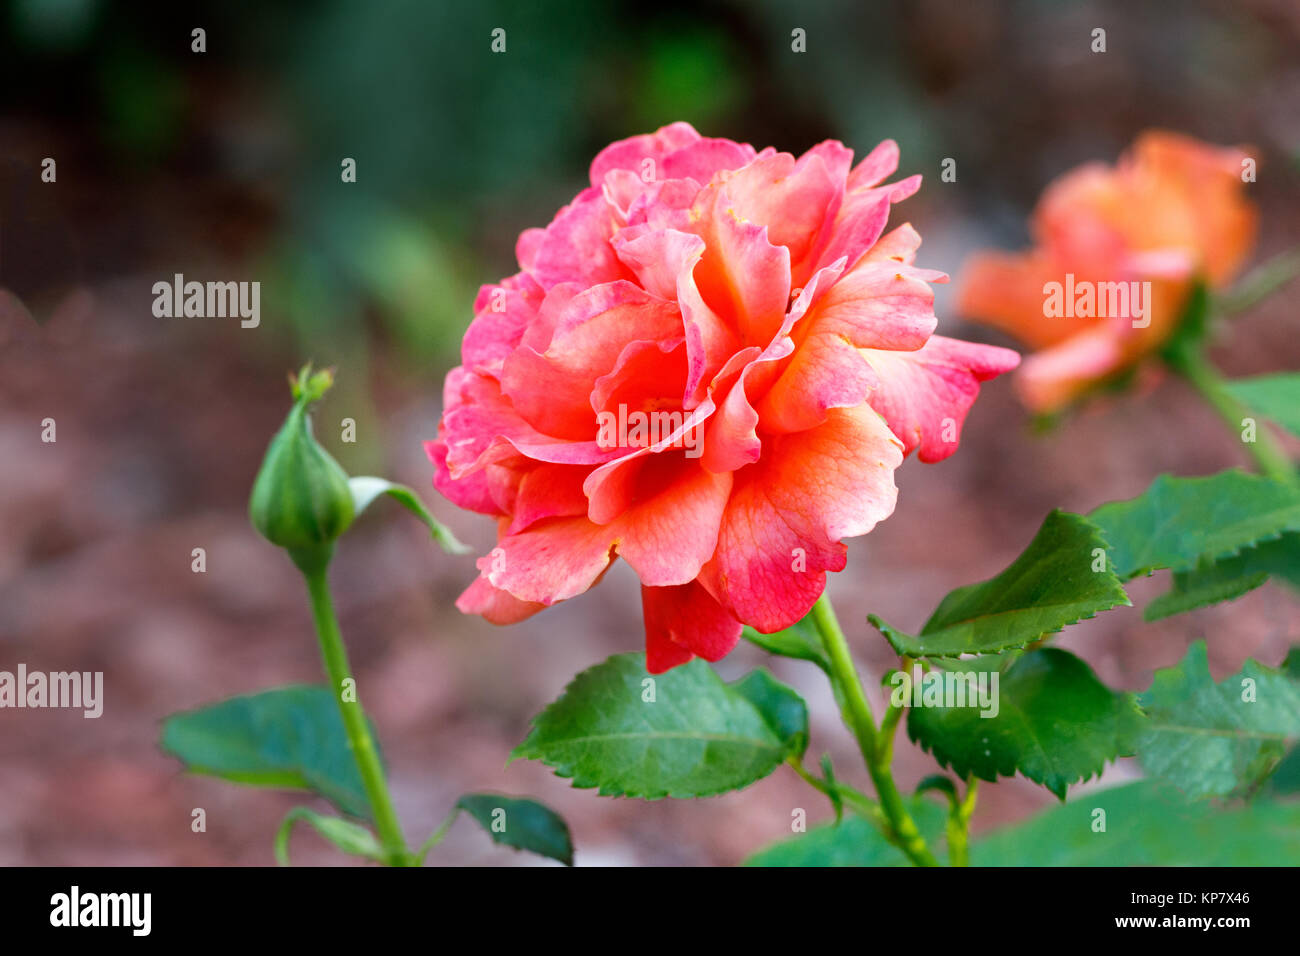 Salmon Color Rose Stock Photos & Salmon Color Rose Stock Images - Alamy